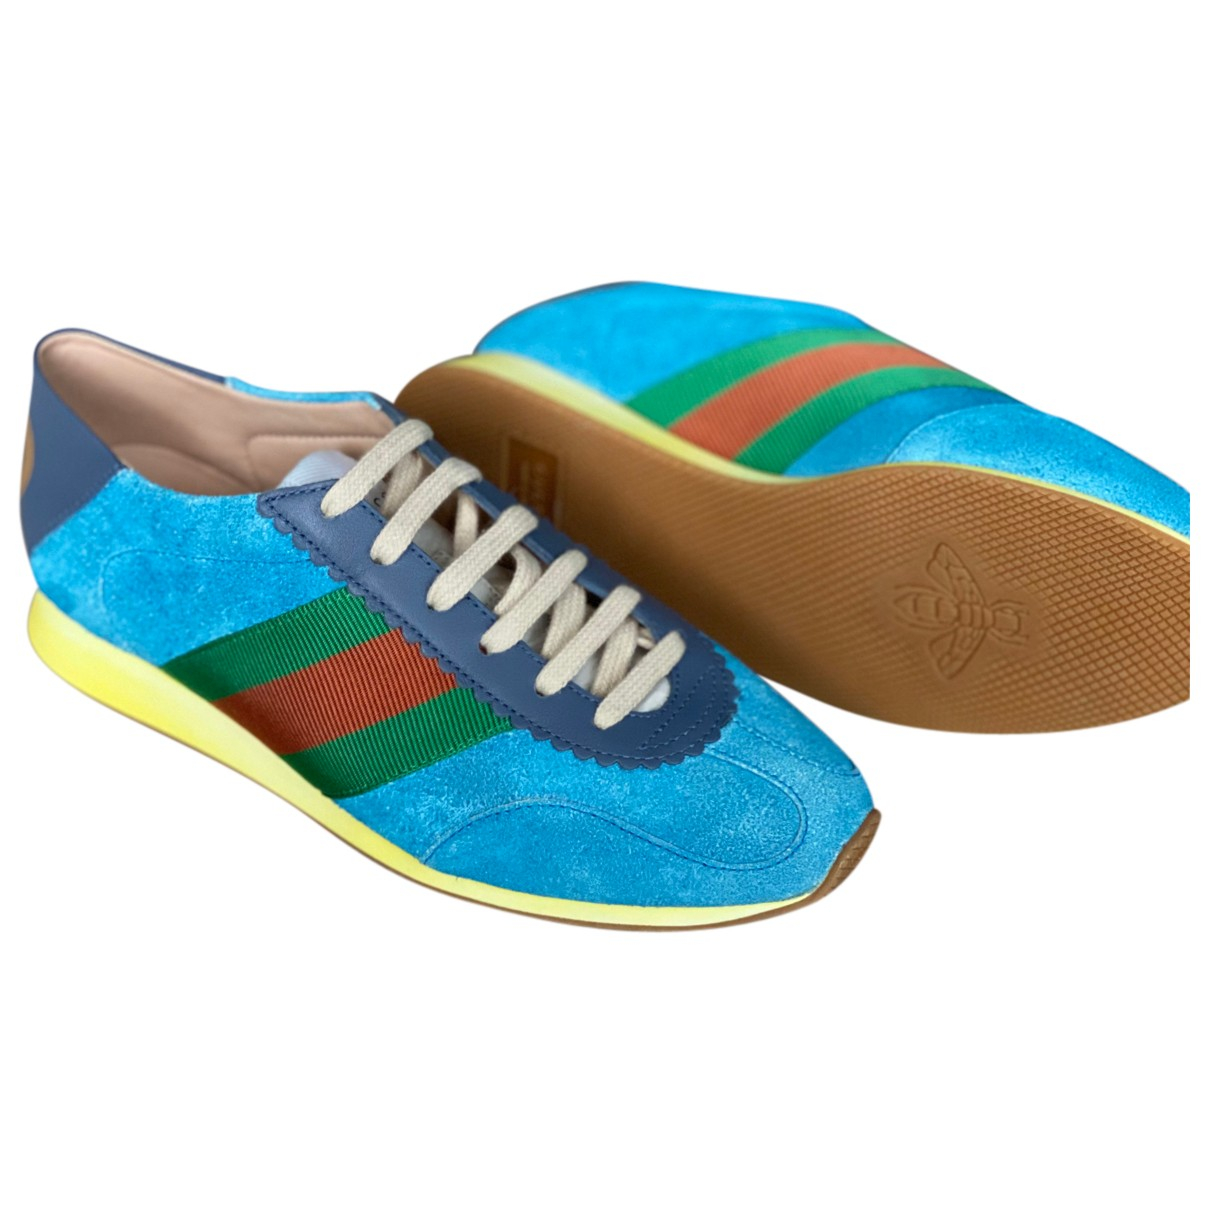 Gucci N Multicolour Leather Trainers for Women 37 EU